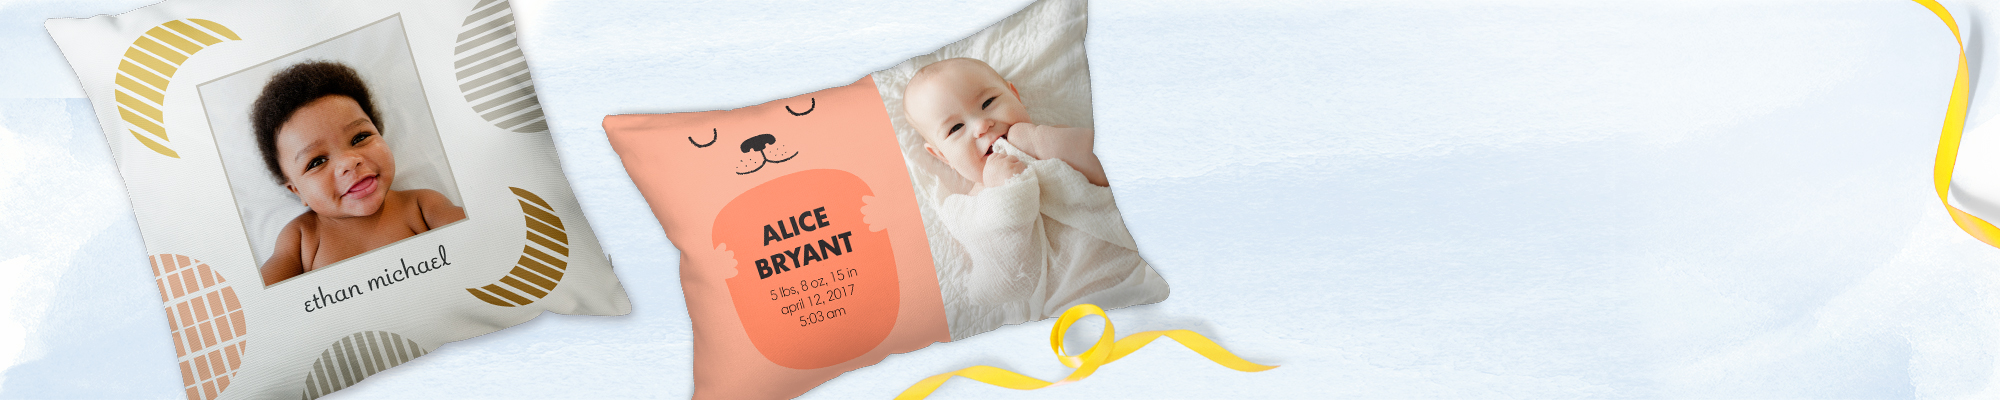 New Baby Photo Gift Ideas